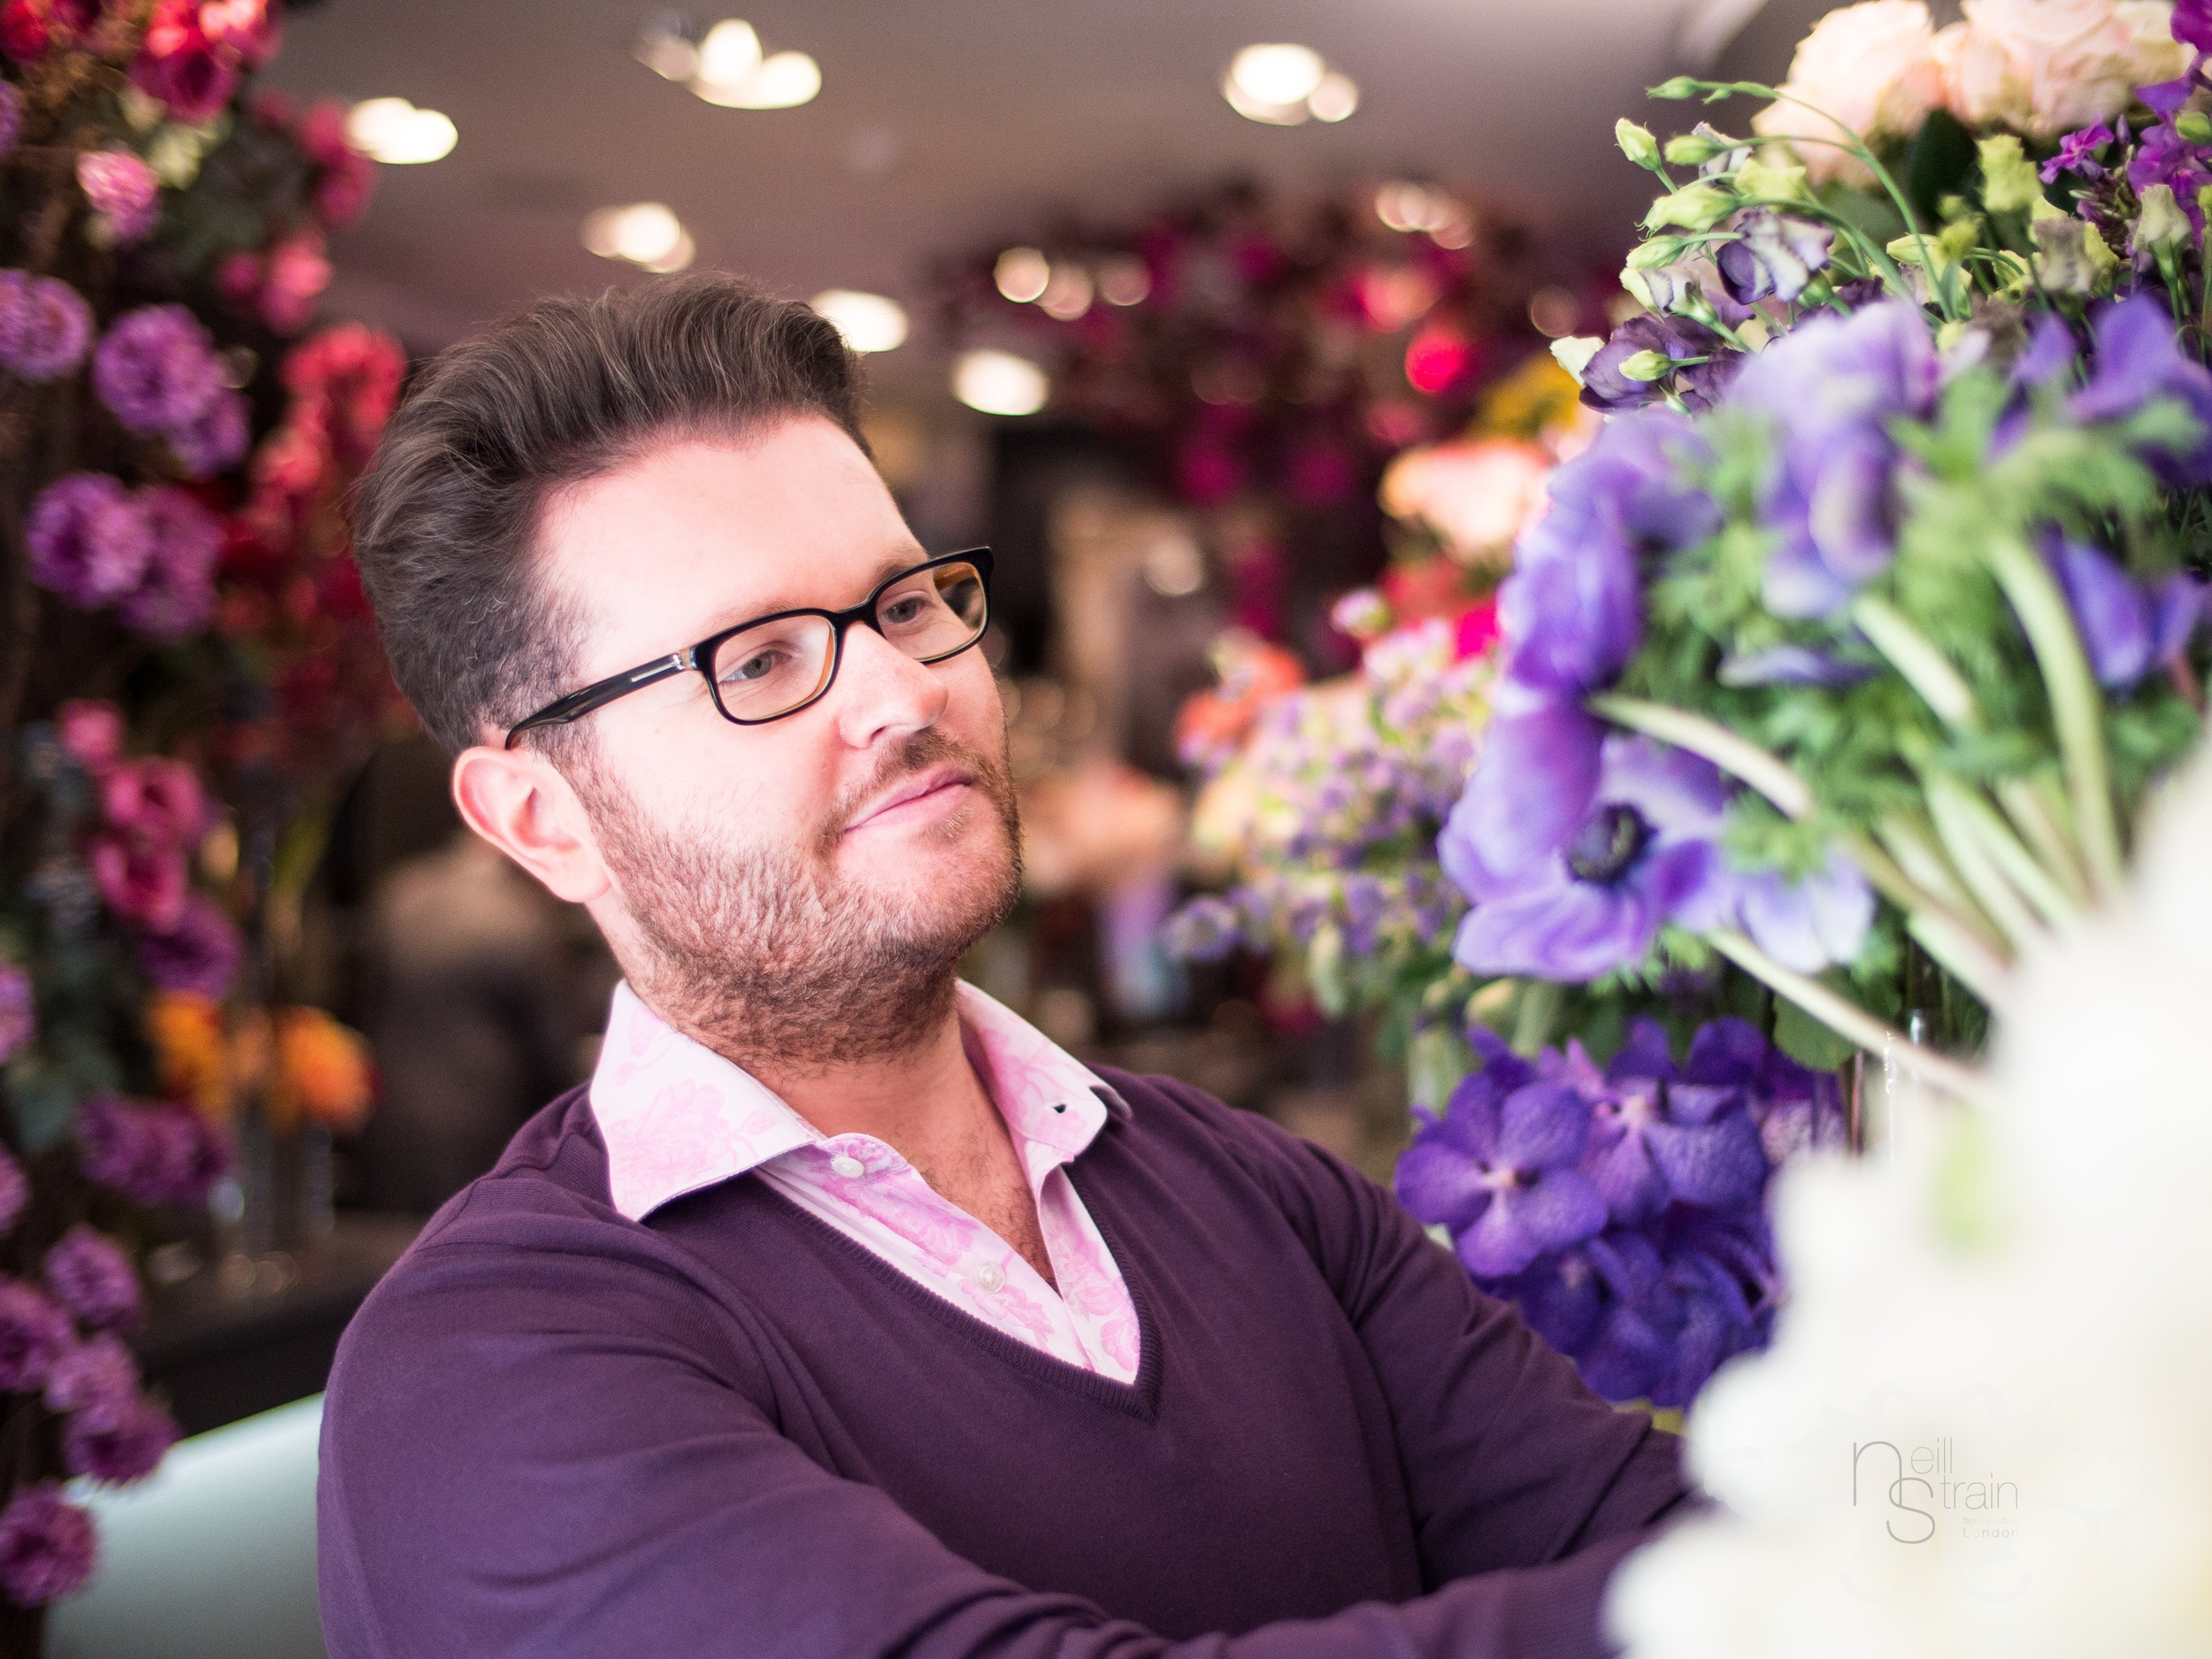 The extravagant range of brightly coloured, lush textured blooms in springtime is almost overwhelming.  Neill tells us about some of his favourite seasonal flowers.